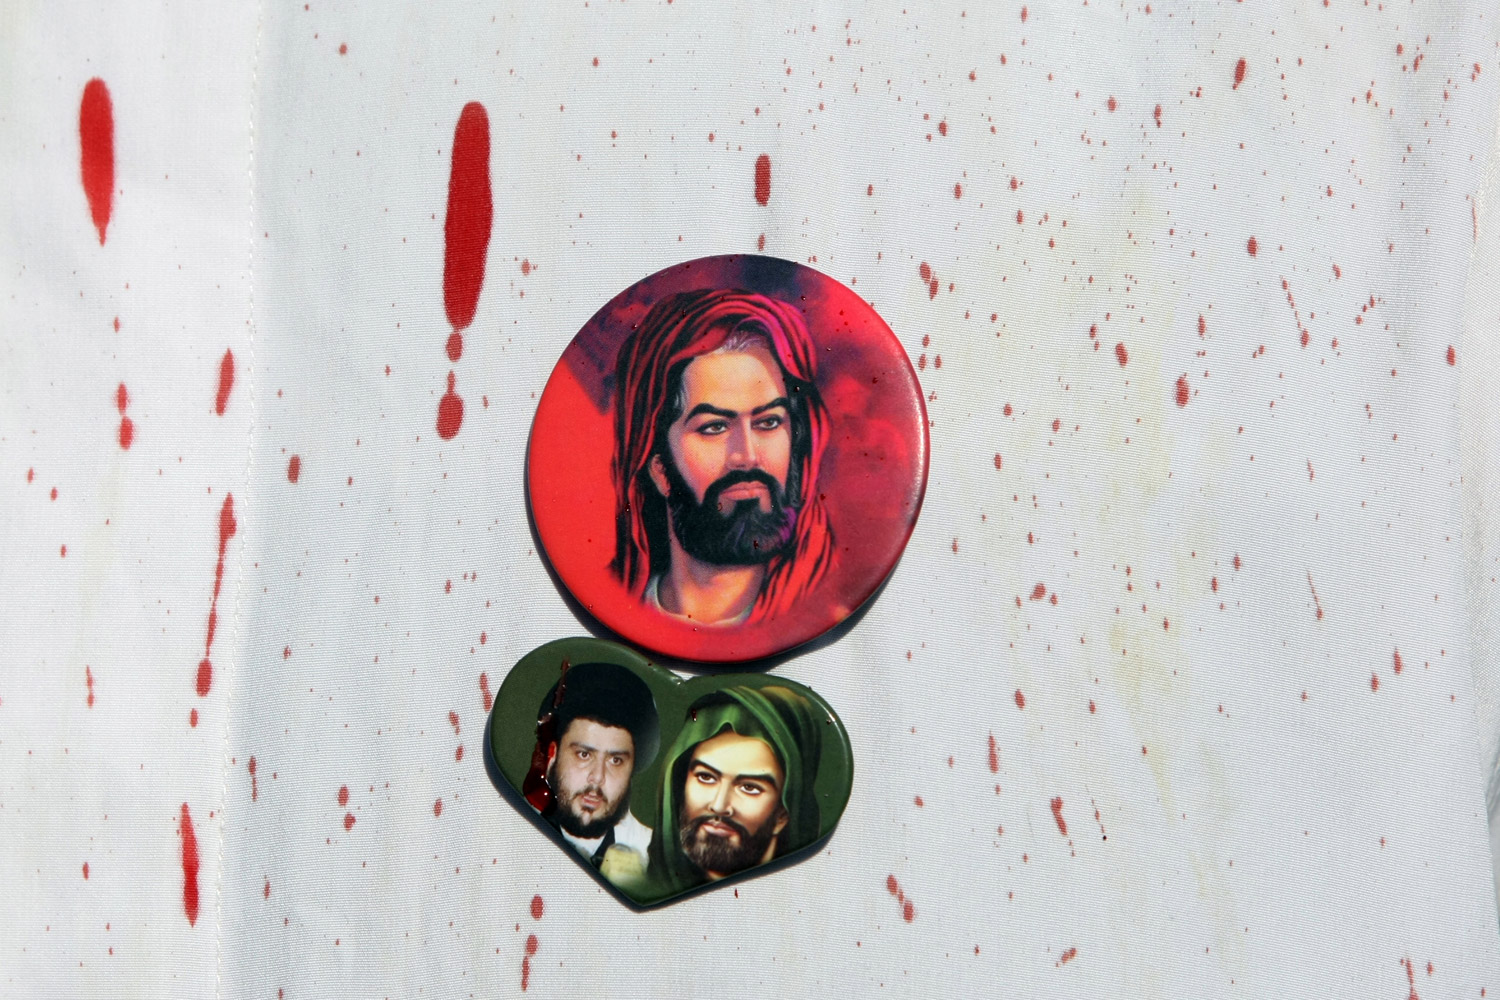 December 6, 2011. A badge picturing Imam Hussein, grandson of the Prophet Muhammad, and another of him with the Iraqi Shi'ite cleric Moqtada al‑Sadr, are seen on the bloodstained shirt of a man taking part in the Shi'ite commemoration of Ashura, a holiday marking Hussein's death that can involve ritual bloodletting.